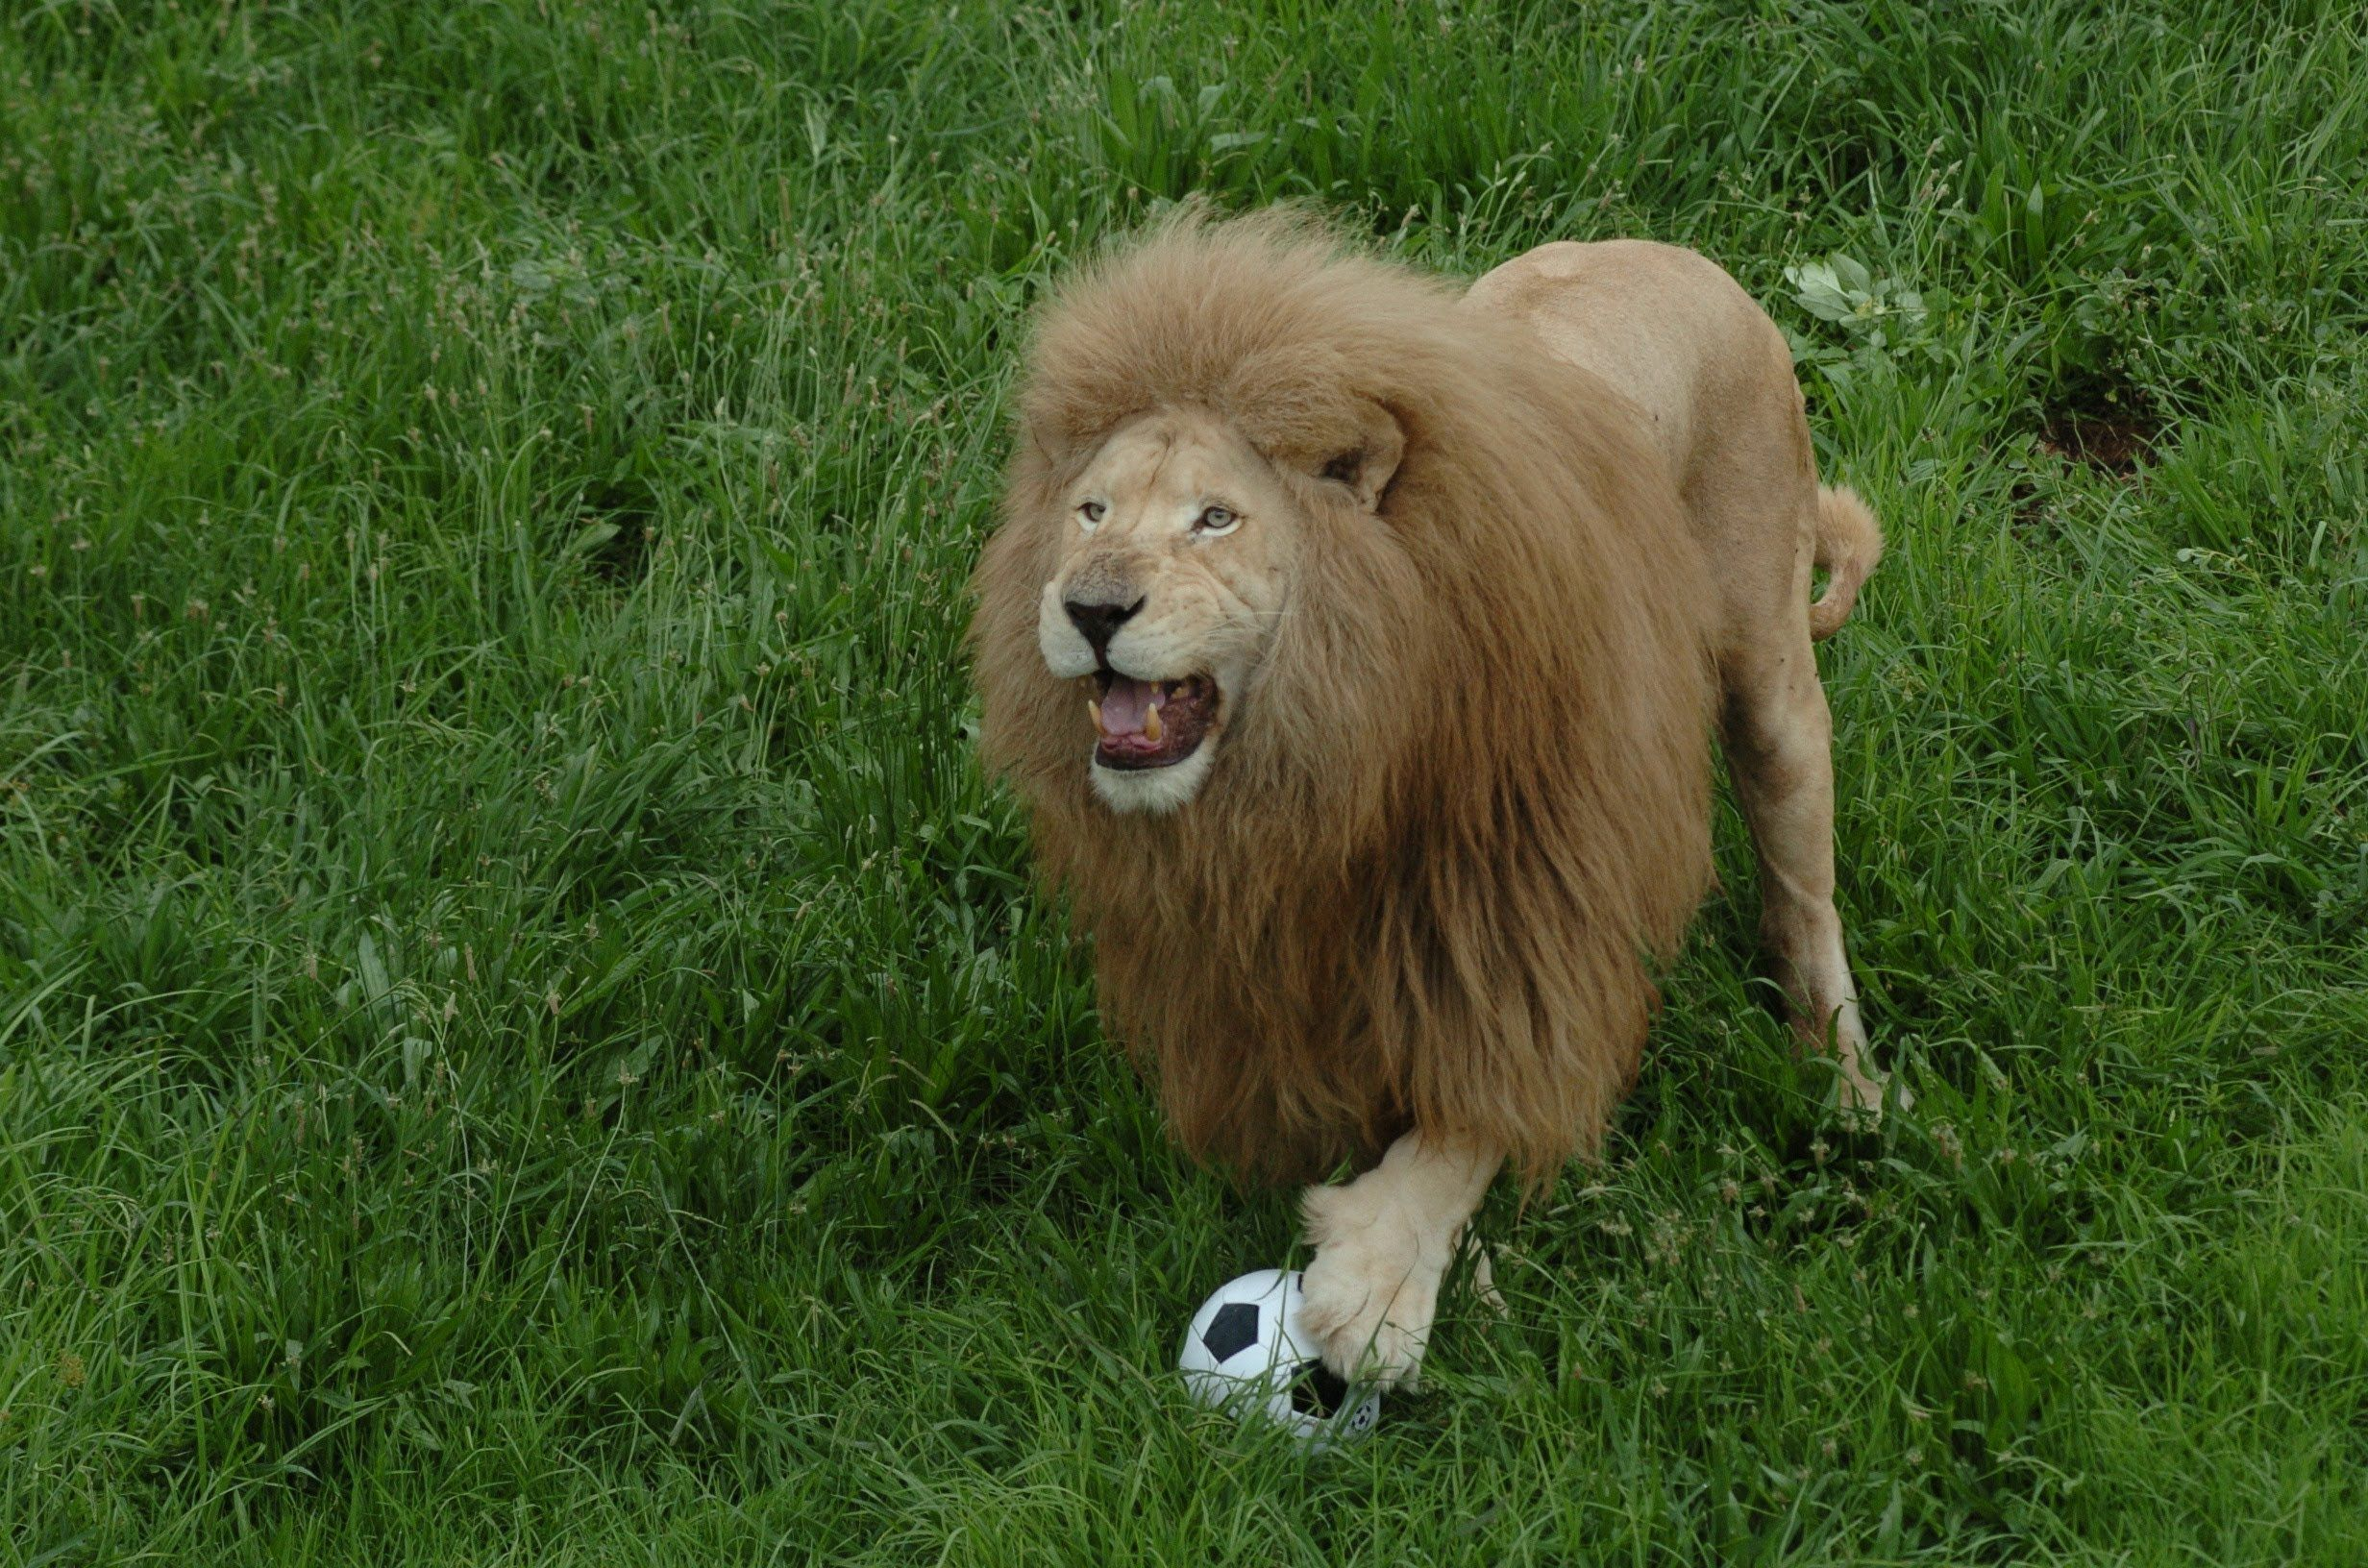 As Soon As They Toss A Soccer Ball Into His Enclosure, This Lion Goes Nuts!